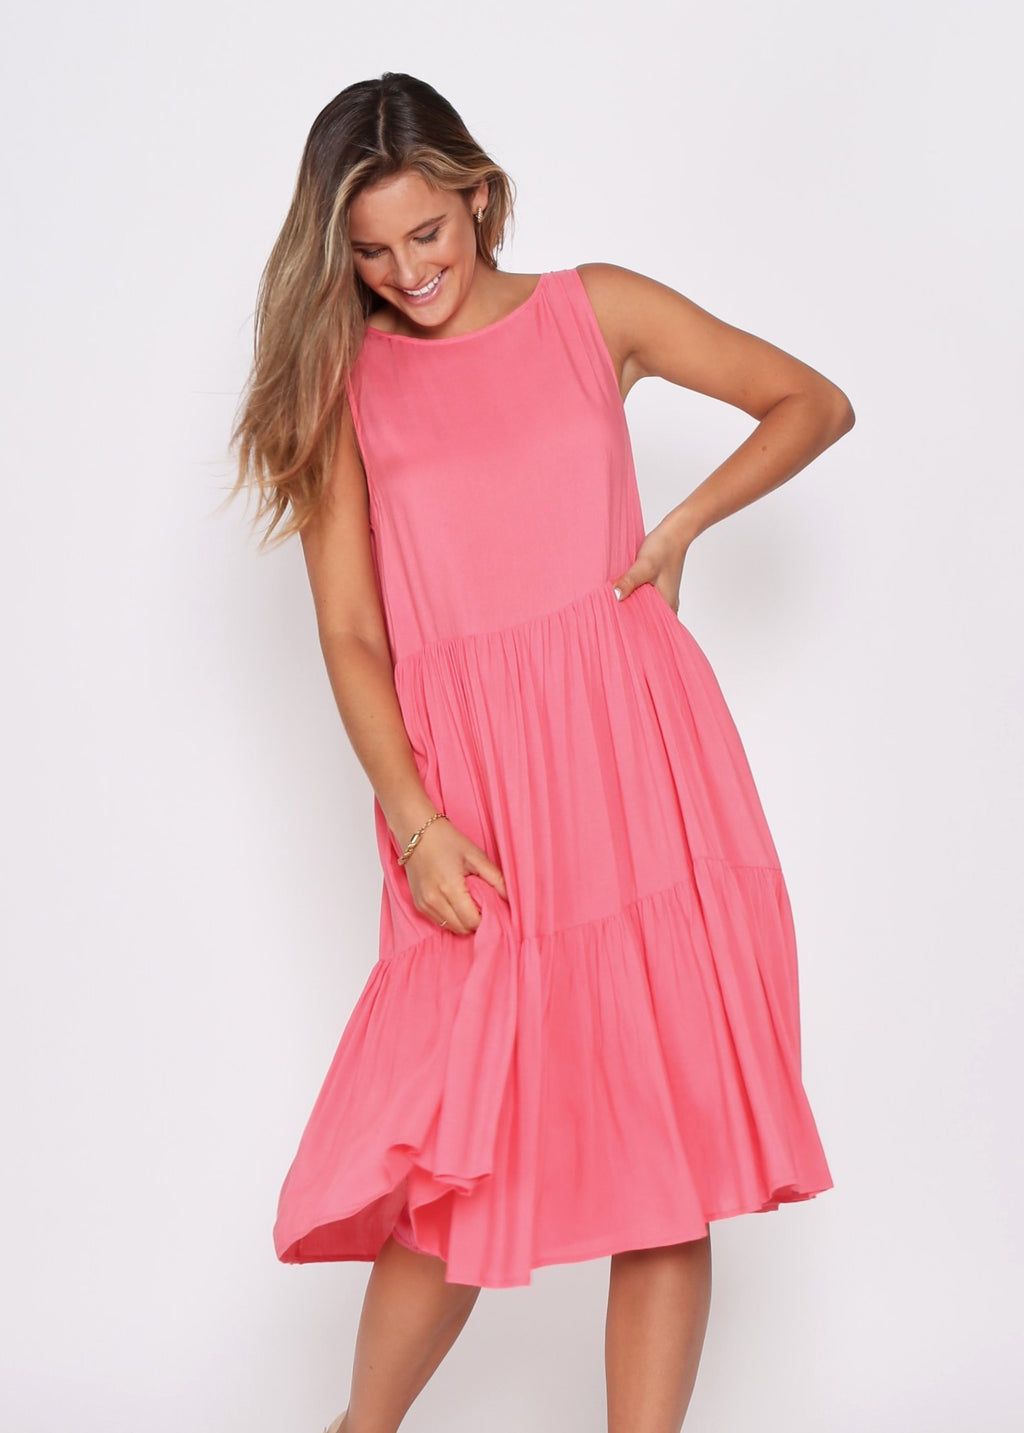 NEW - REESE DRESS - MELON